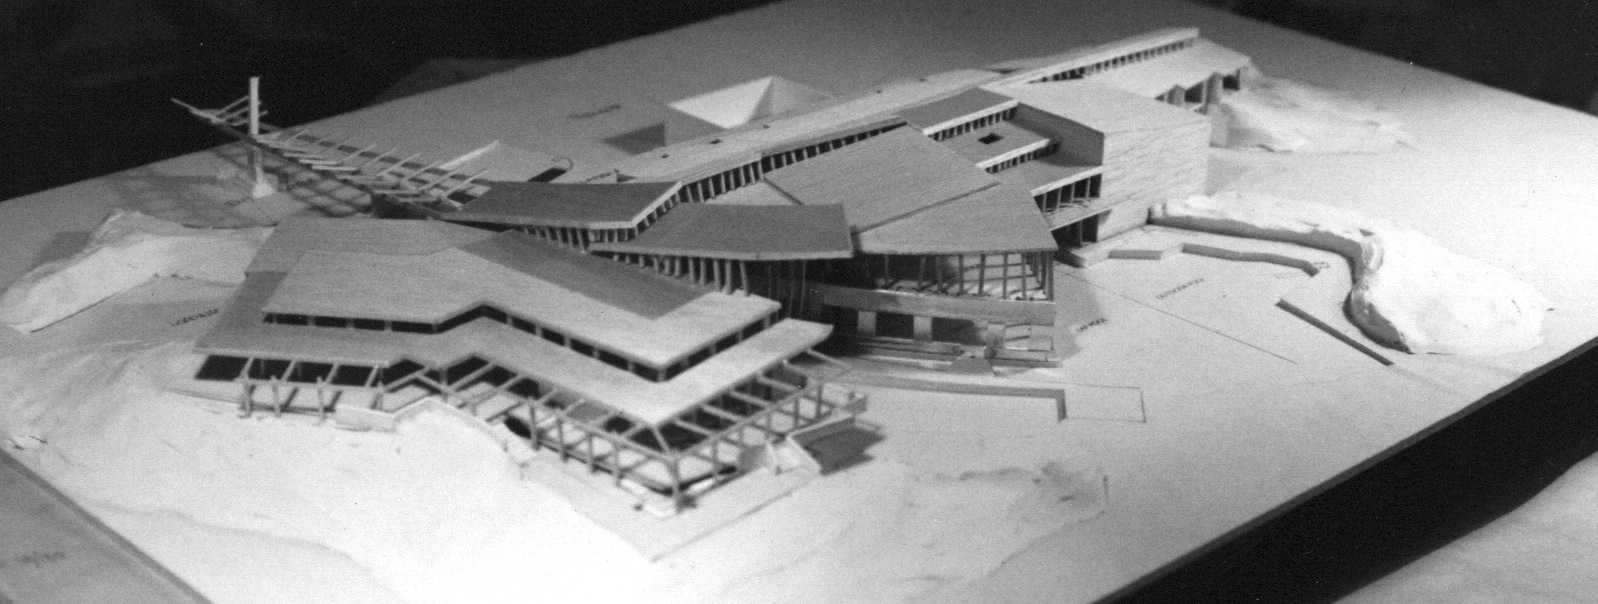 South Aerial View-Design Model.jpg